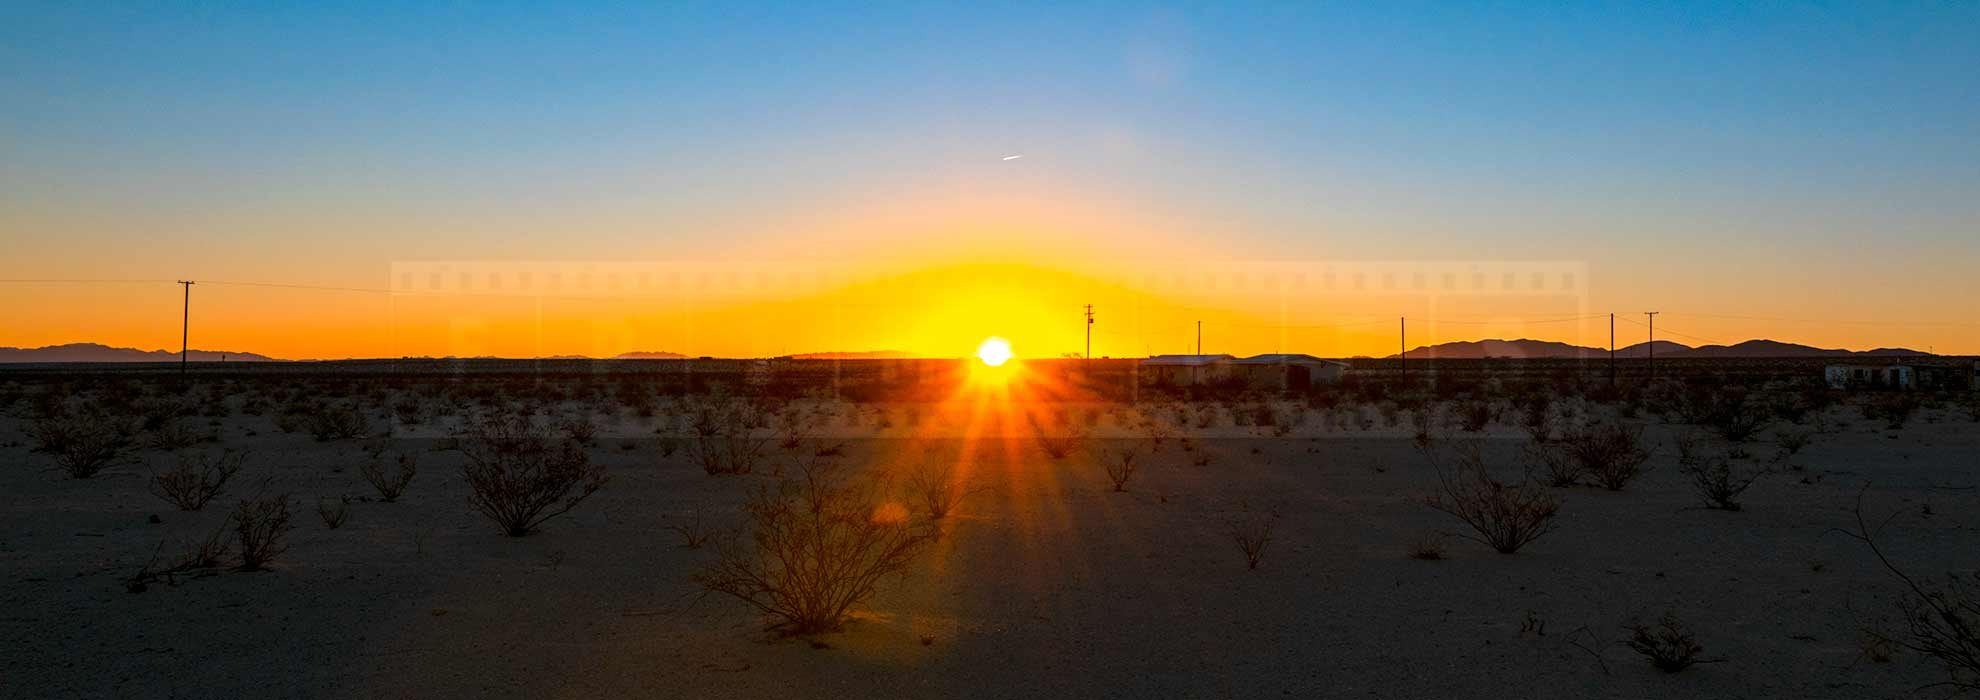 Sun rising above the horizon in the high desert of 29 Palms